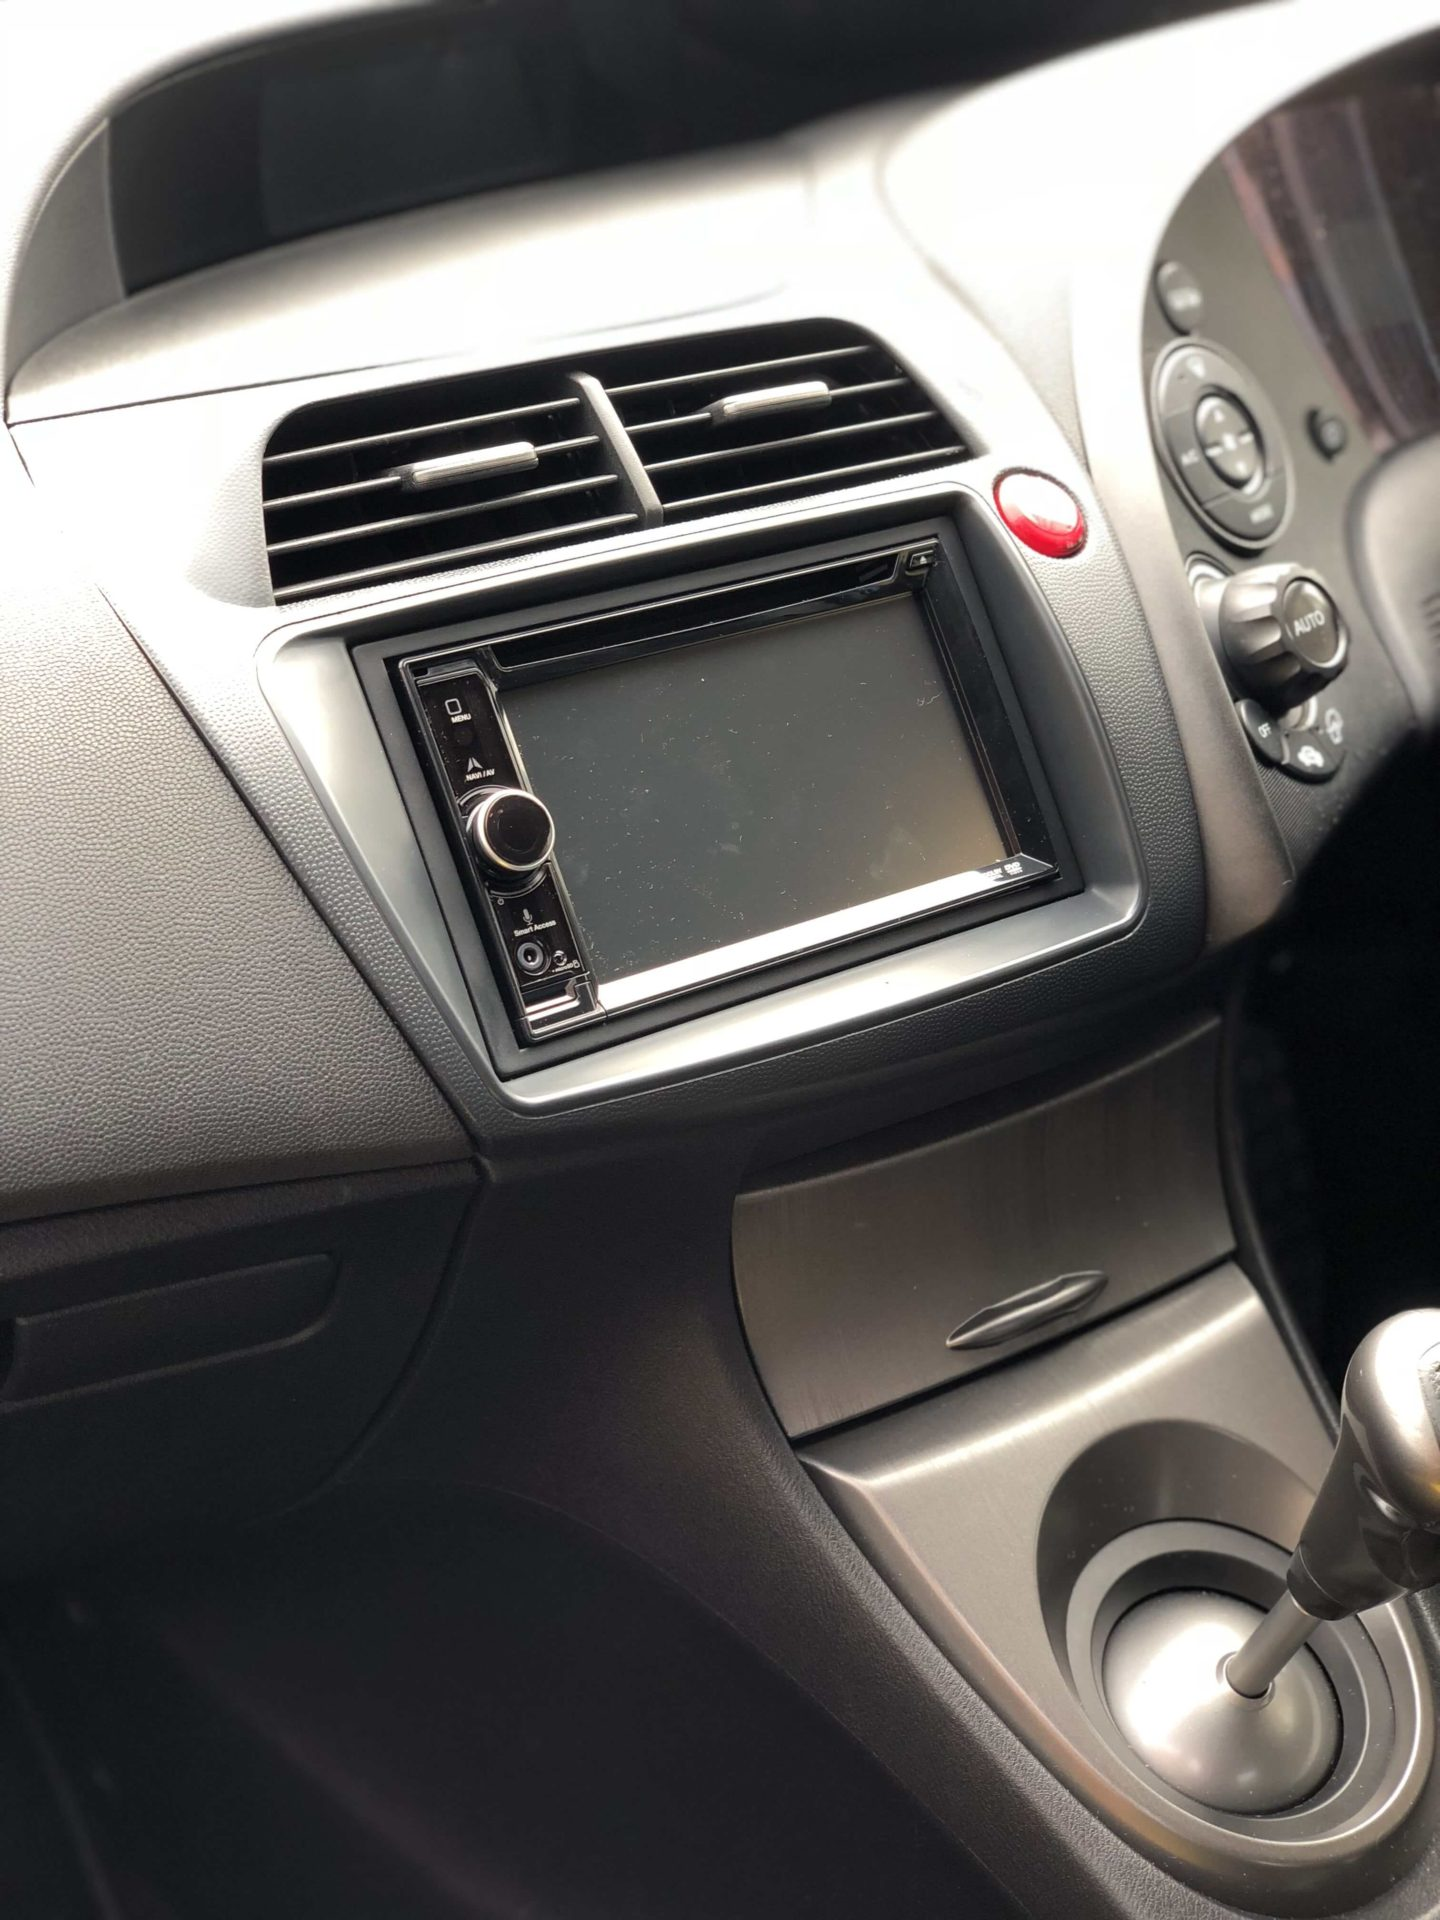 Clarion SatNav unit in Honda Civic 2011-min